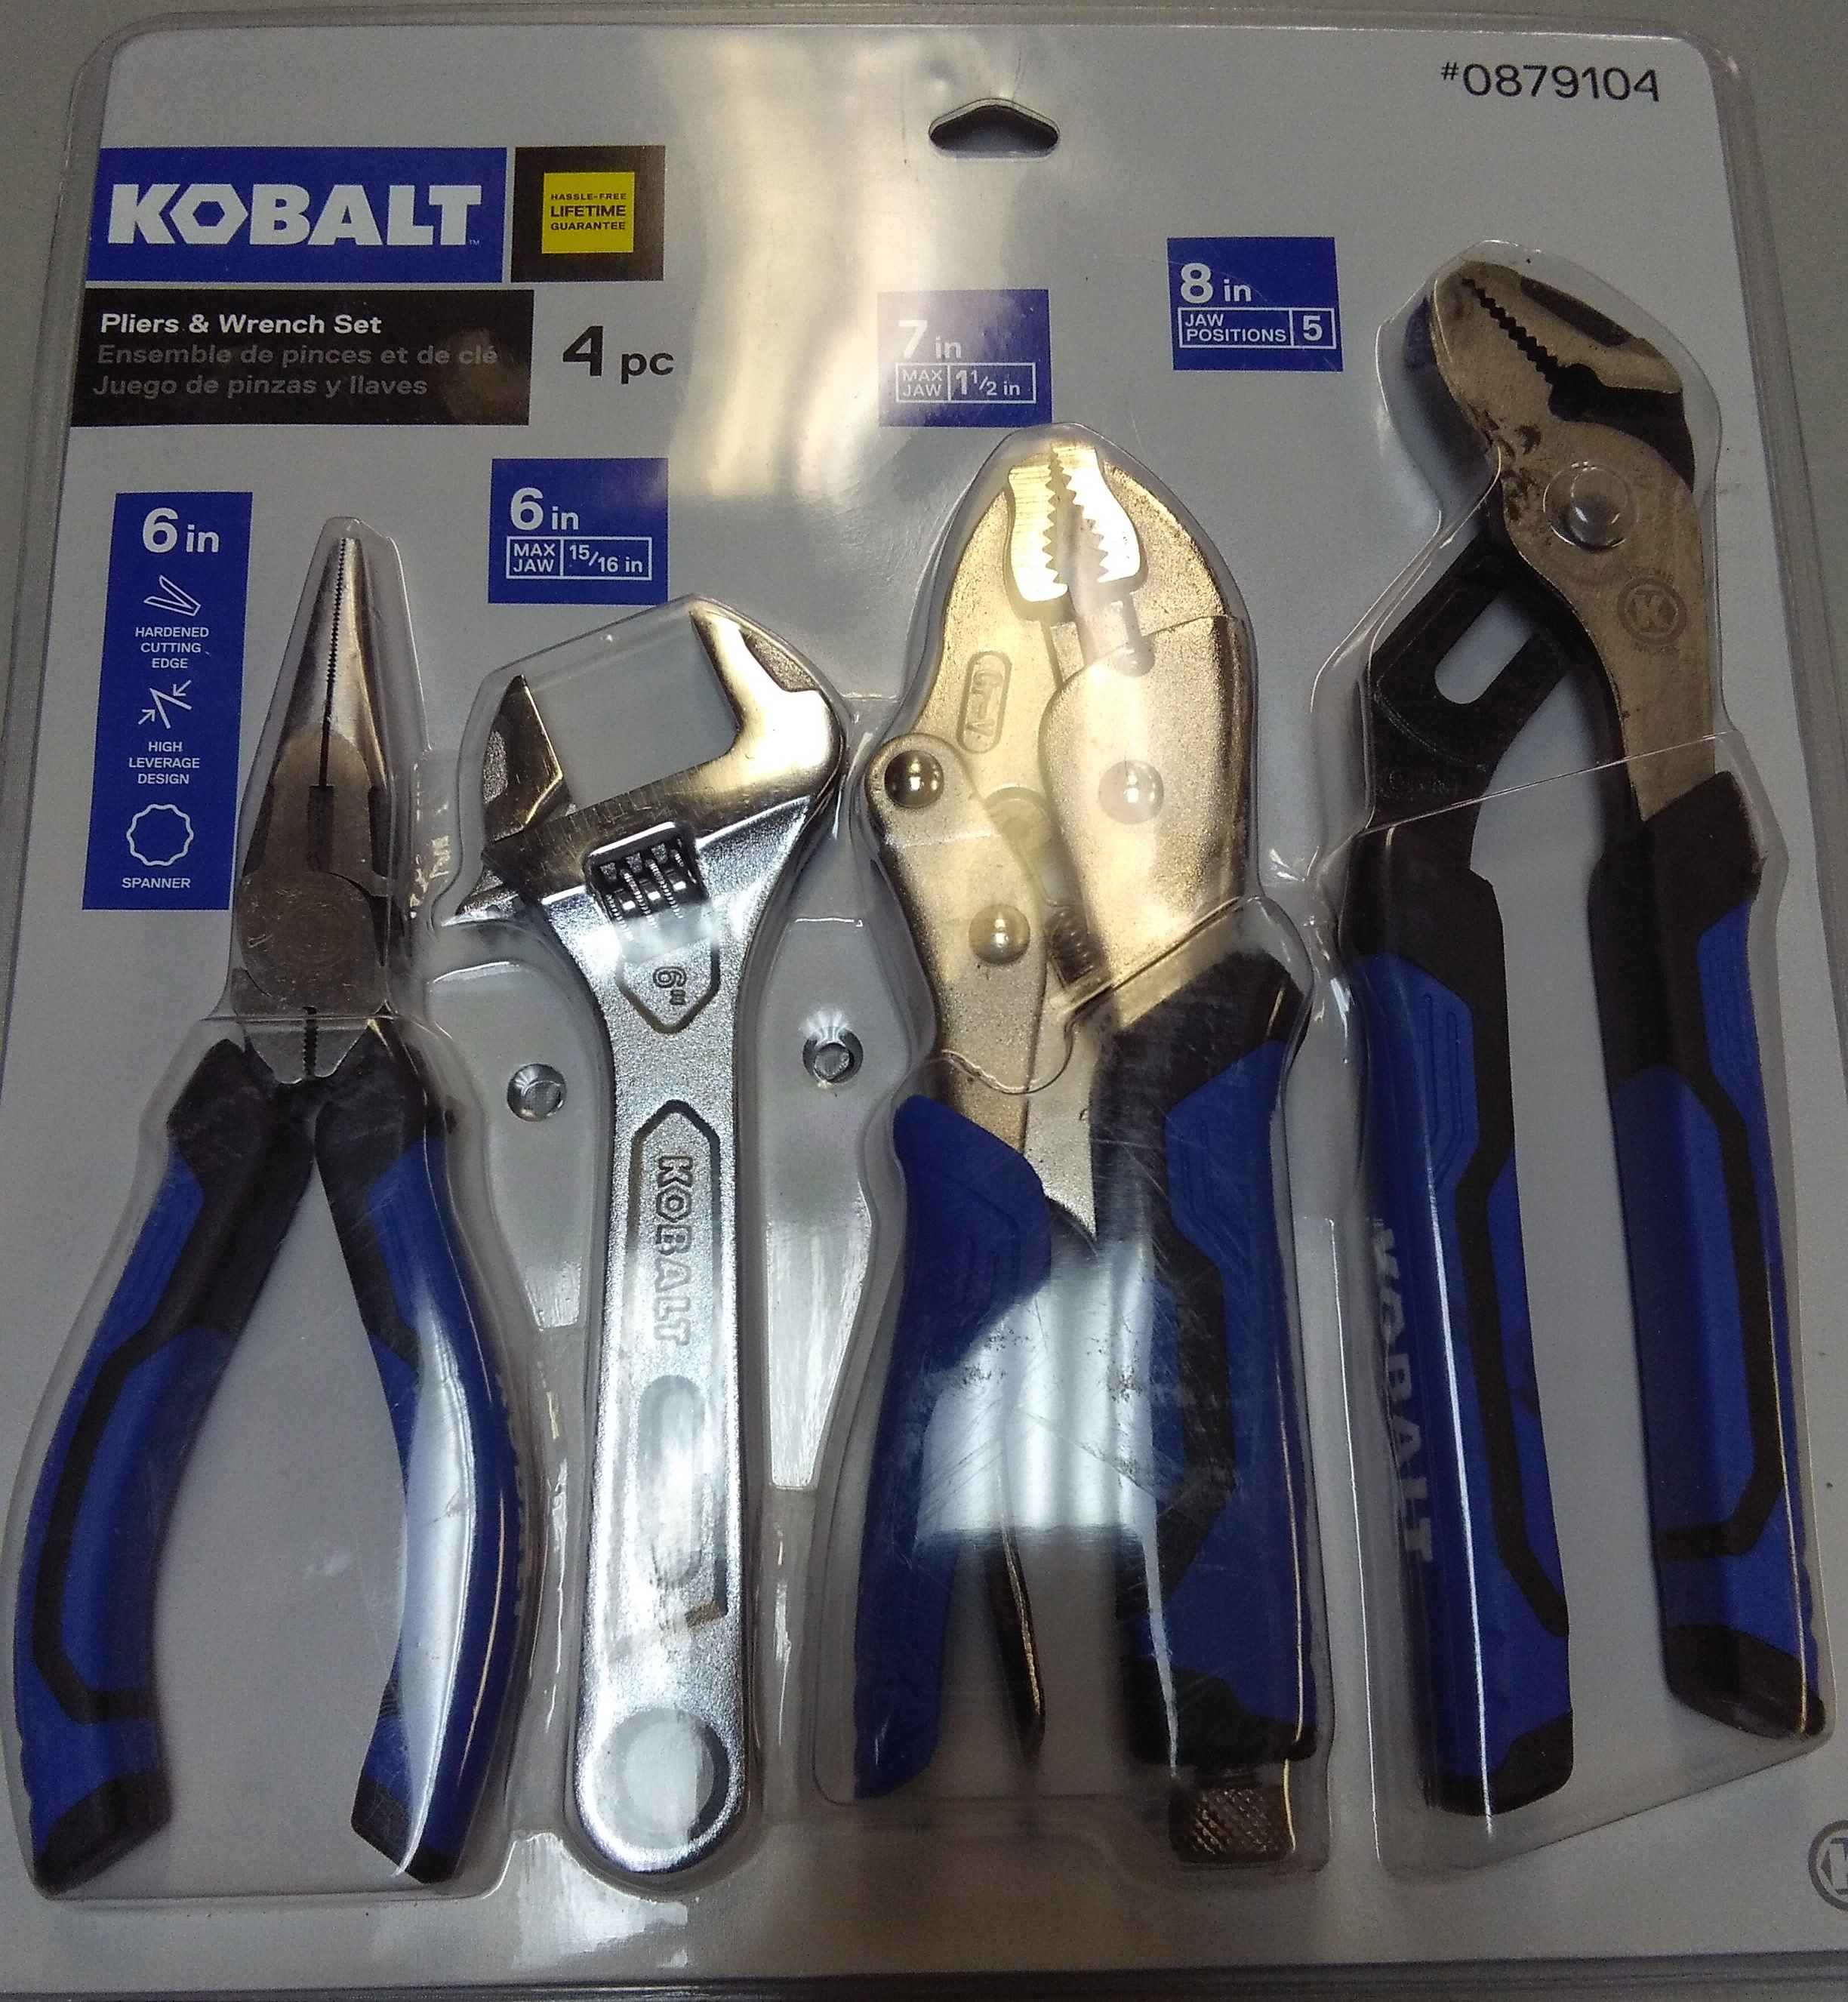 KOBALT 4 PC PLIERS AND WRENCH SET